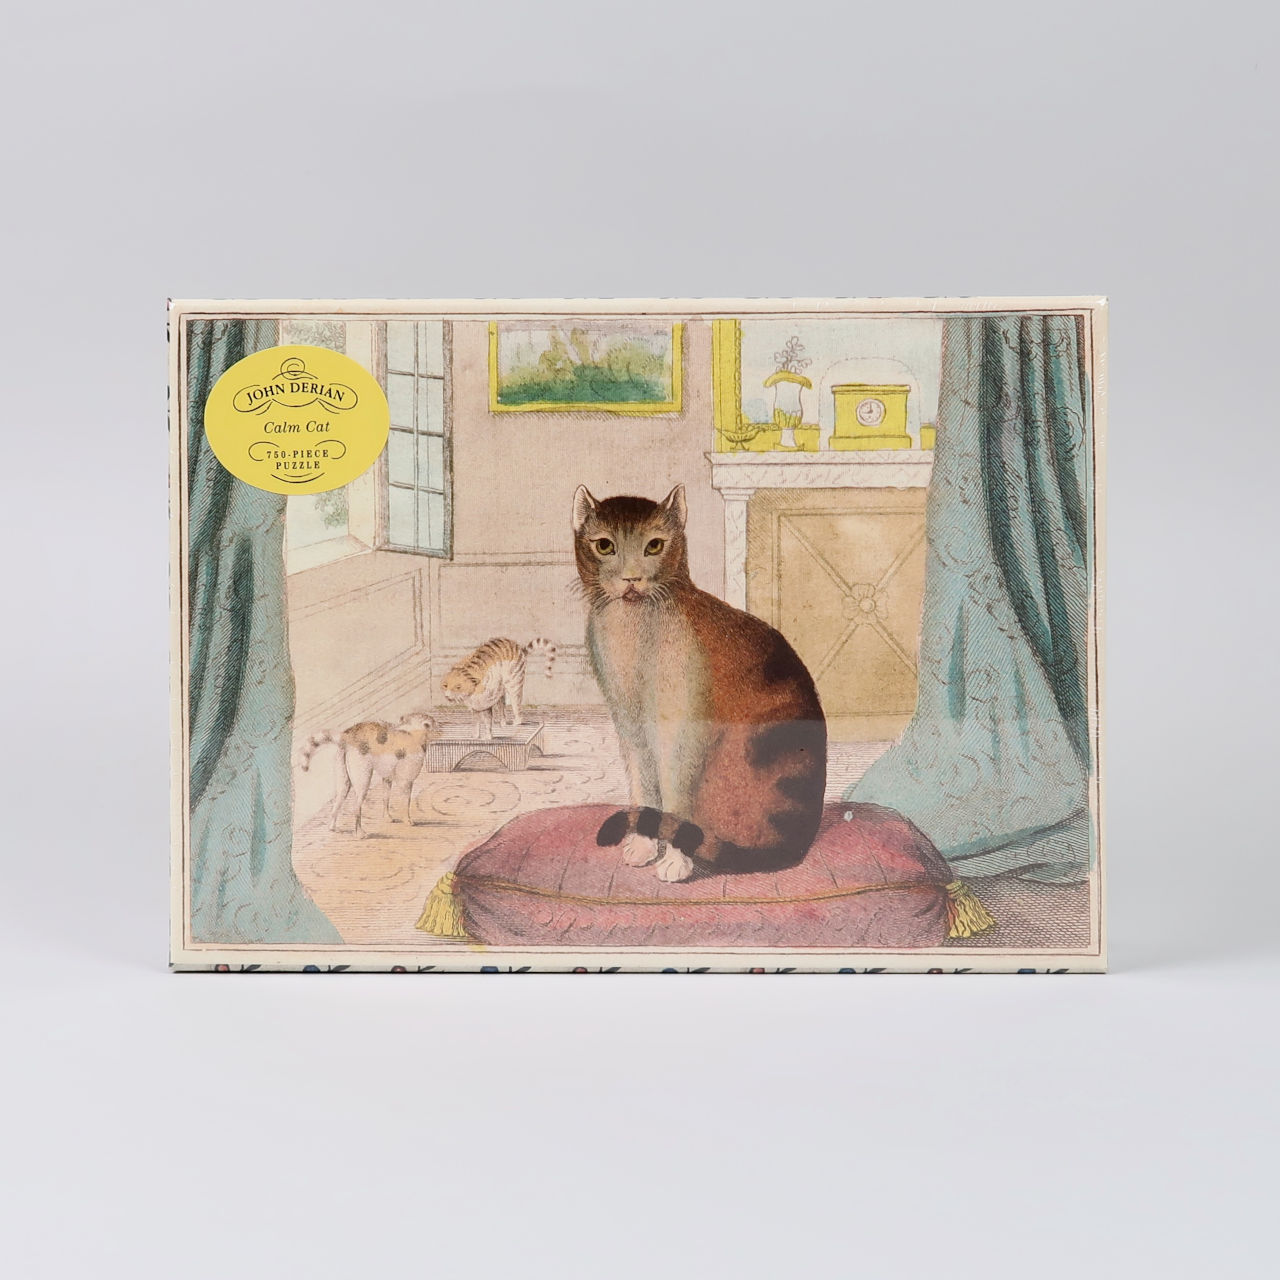 Calm Cat - John Derian - 750 piece jigsaw puzzle